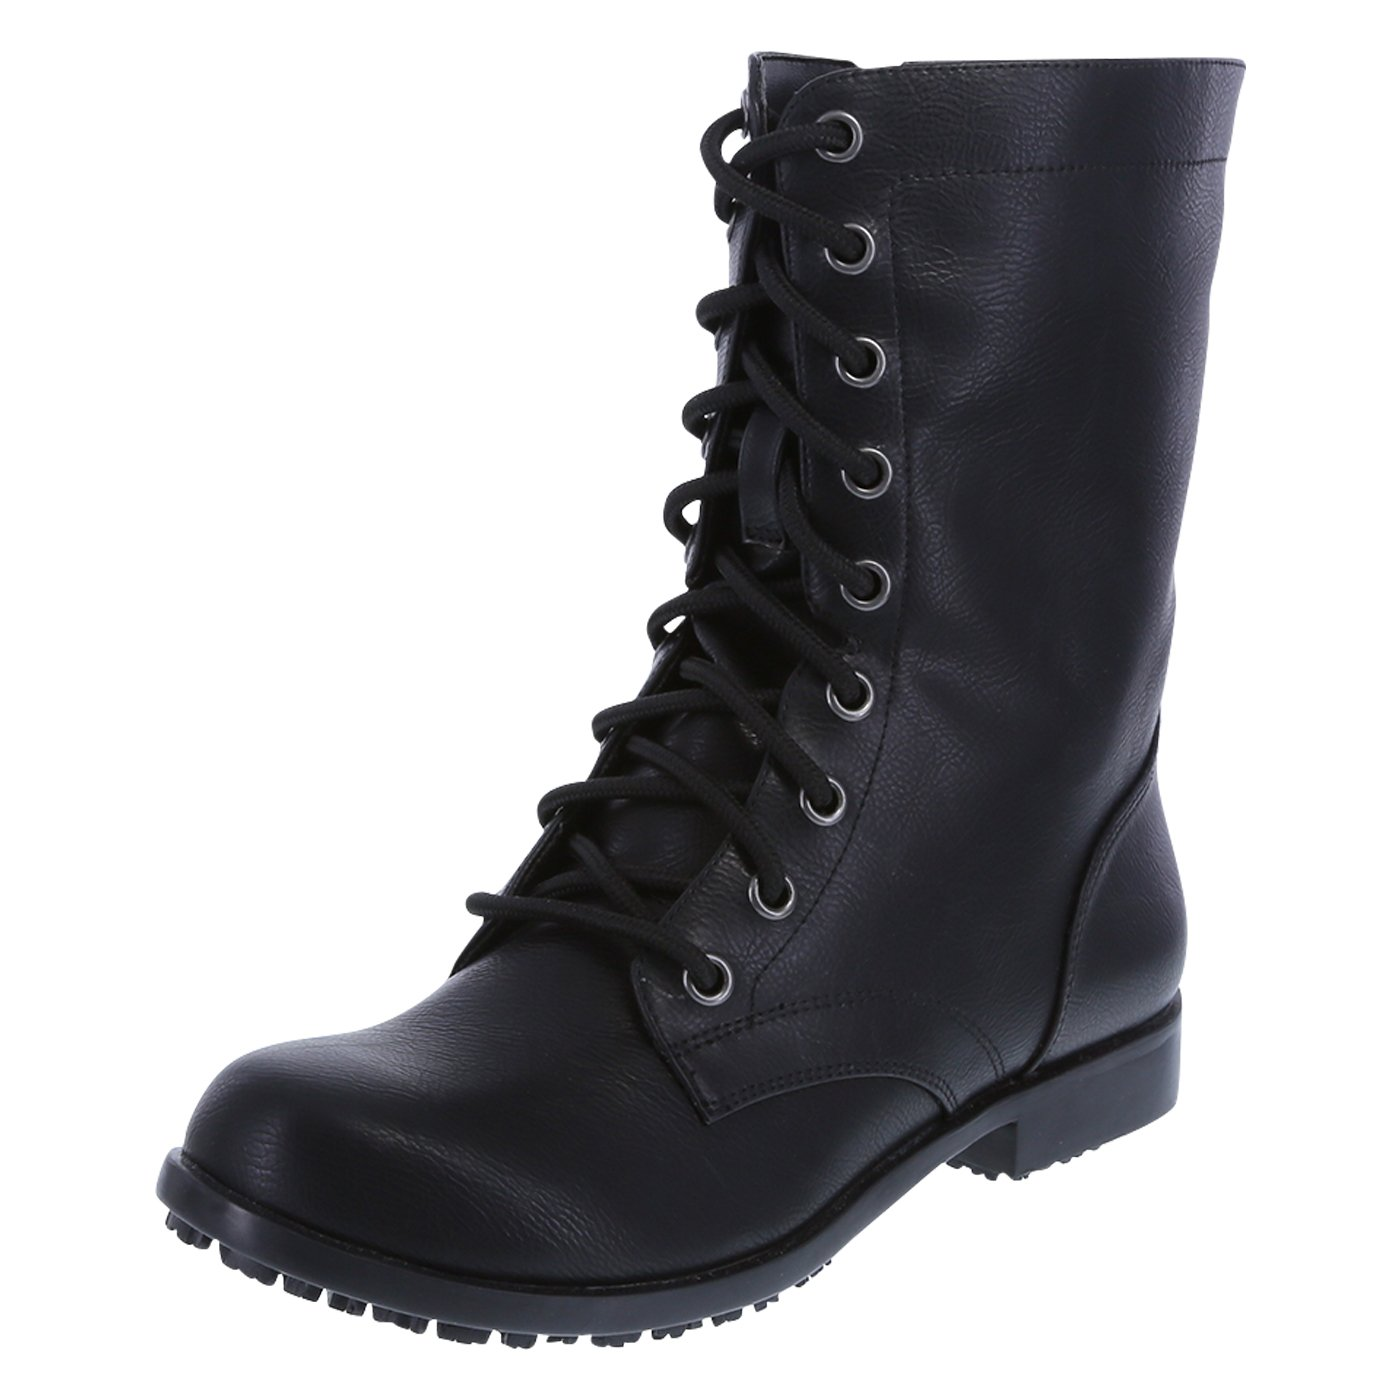 safeTstep Slip Resistant Women's Black Women's Brooke Lace-Up with Zipper Boot 12 Wide